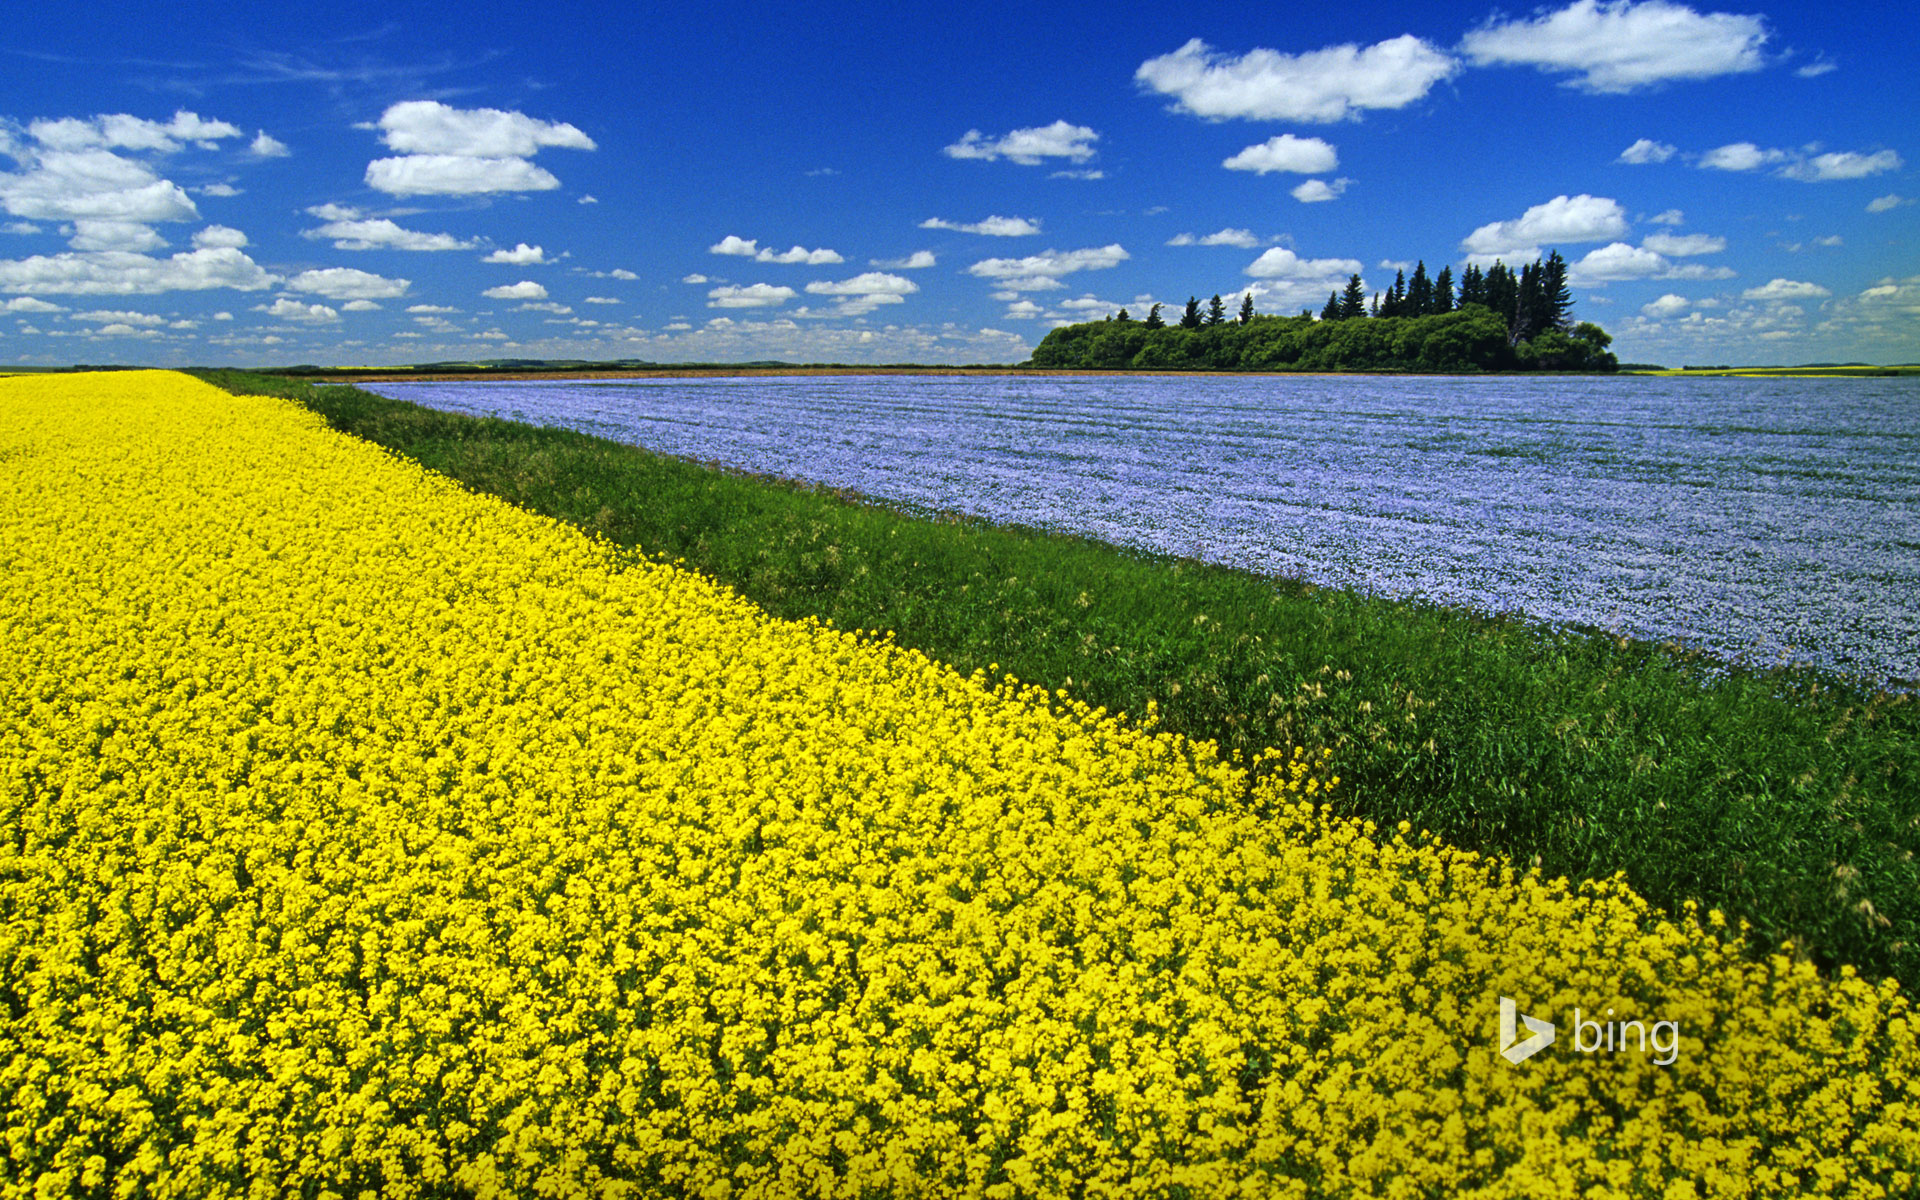 Flowering canola field with flax in the background and a sky filled with cumulus clouds, Tiger Hills near Somerset, Manitoba